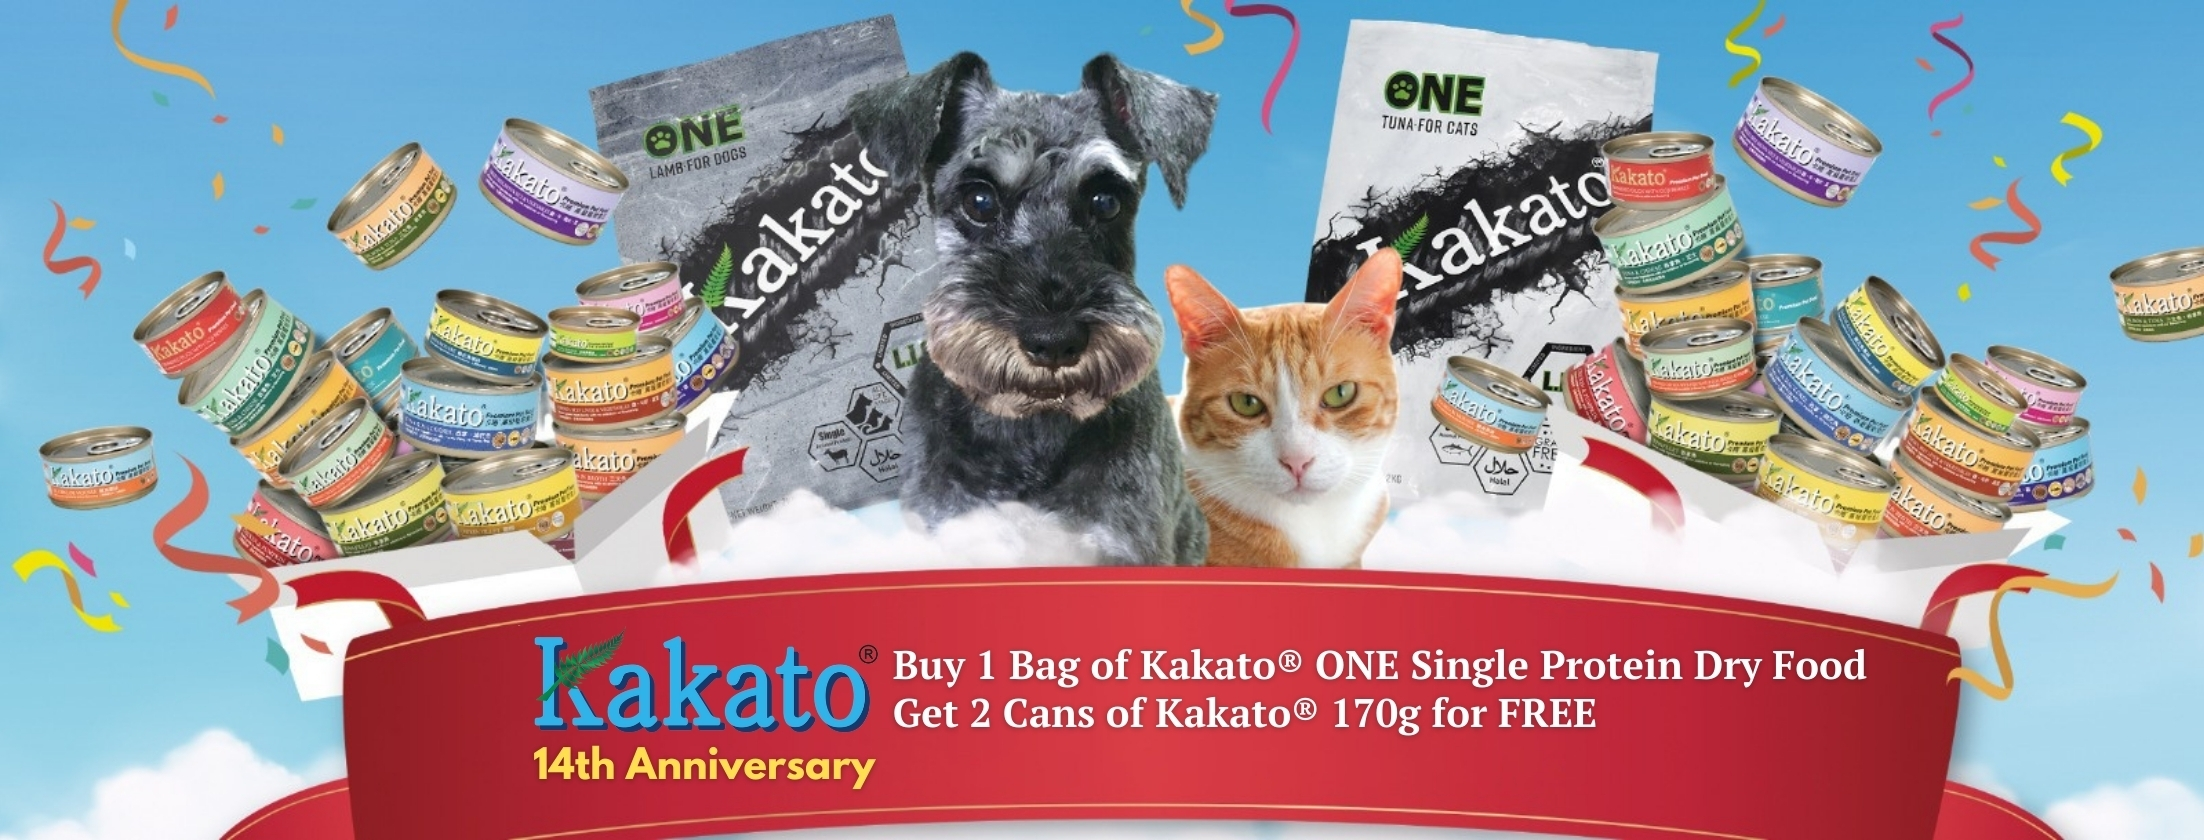 Free Kakato 156g Cans With Purchases of Kakato ONE Dry Food